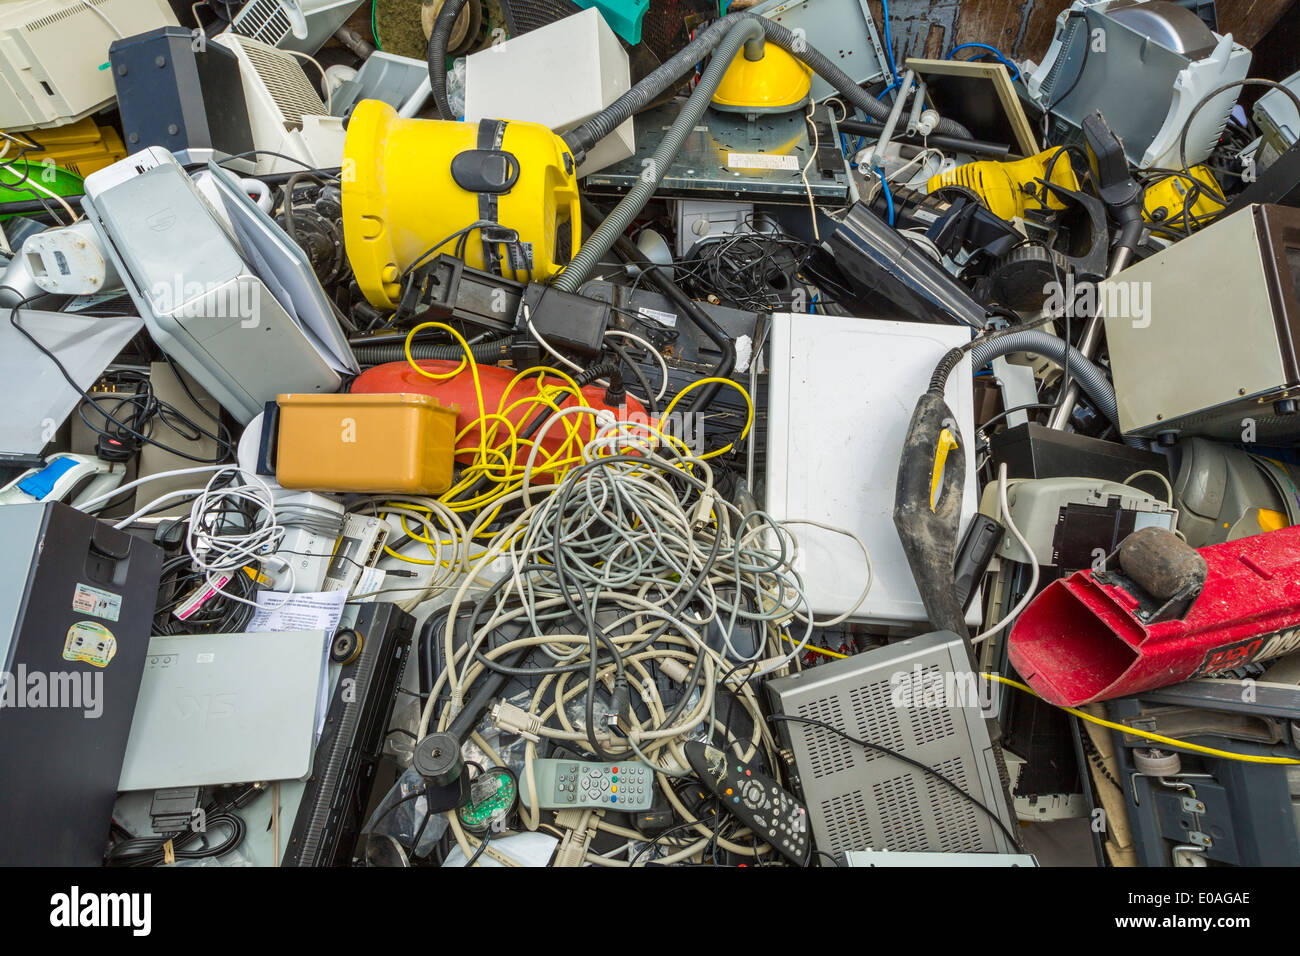 Small electrical appliances laying in a recycling container, London, UK Stock Photo